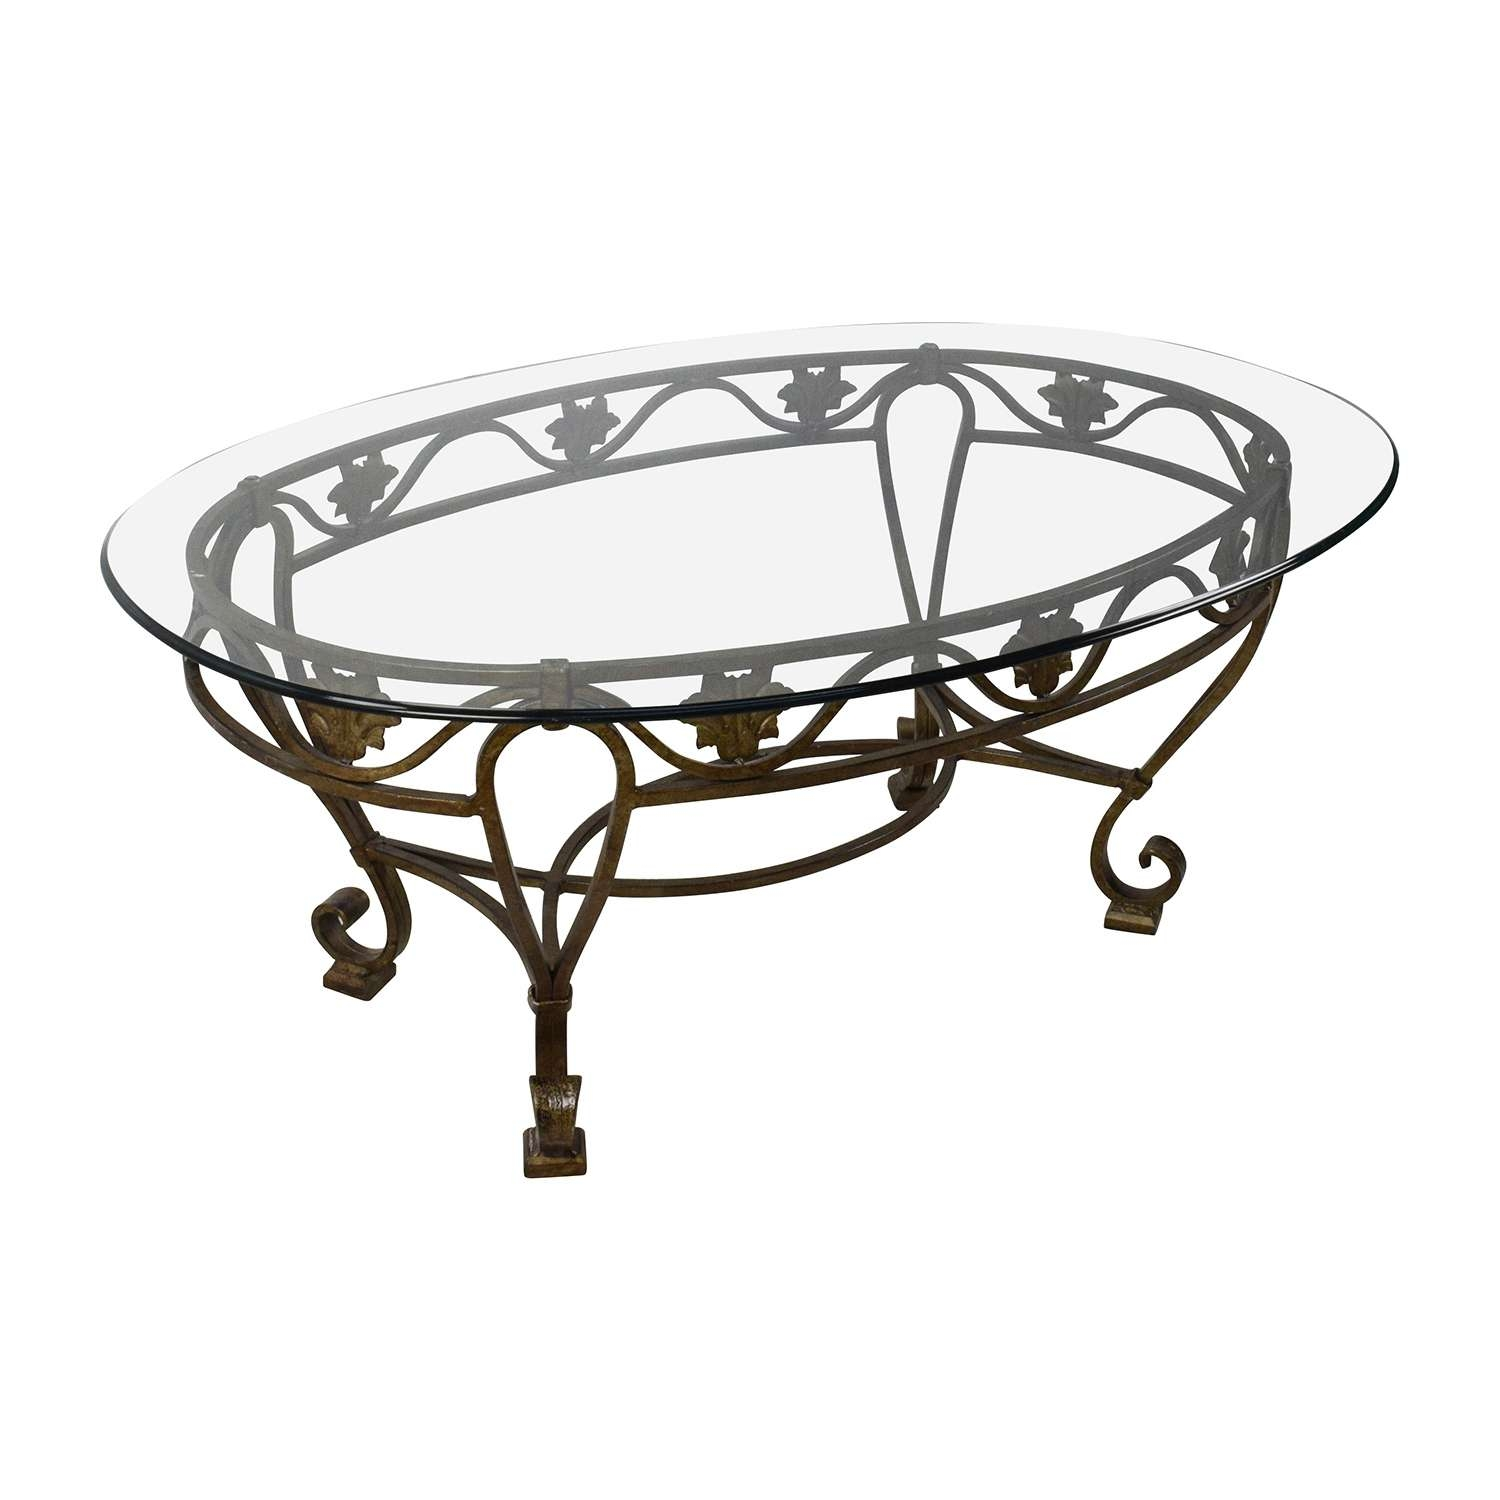 [%Best And Newest Antique Glass Top Coffee Tables In 90% Off – Iron Cast Glass Top Antique Coffee Table / Tables|90% Off – Iron Cast Glass Top Antique Coffee Table / Tables Regarding Trendy Antique Glass Top Coffee Tables%] (View 1 of 20)